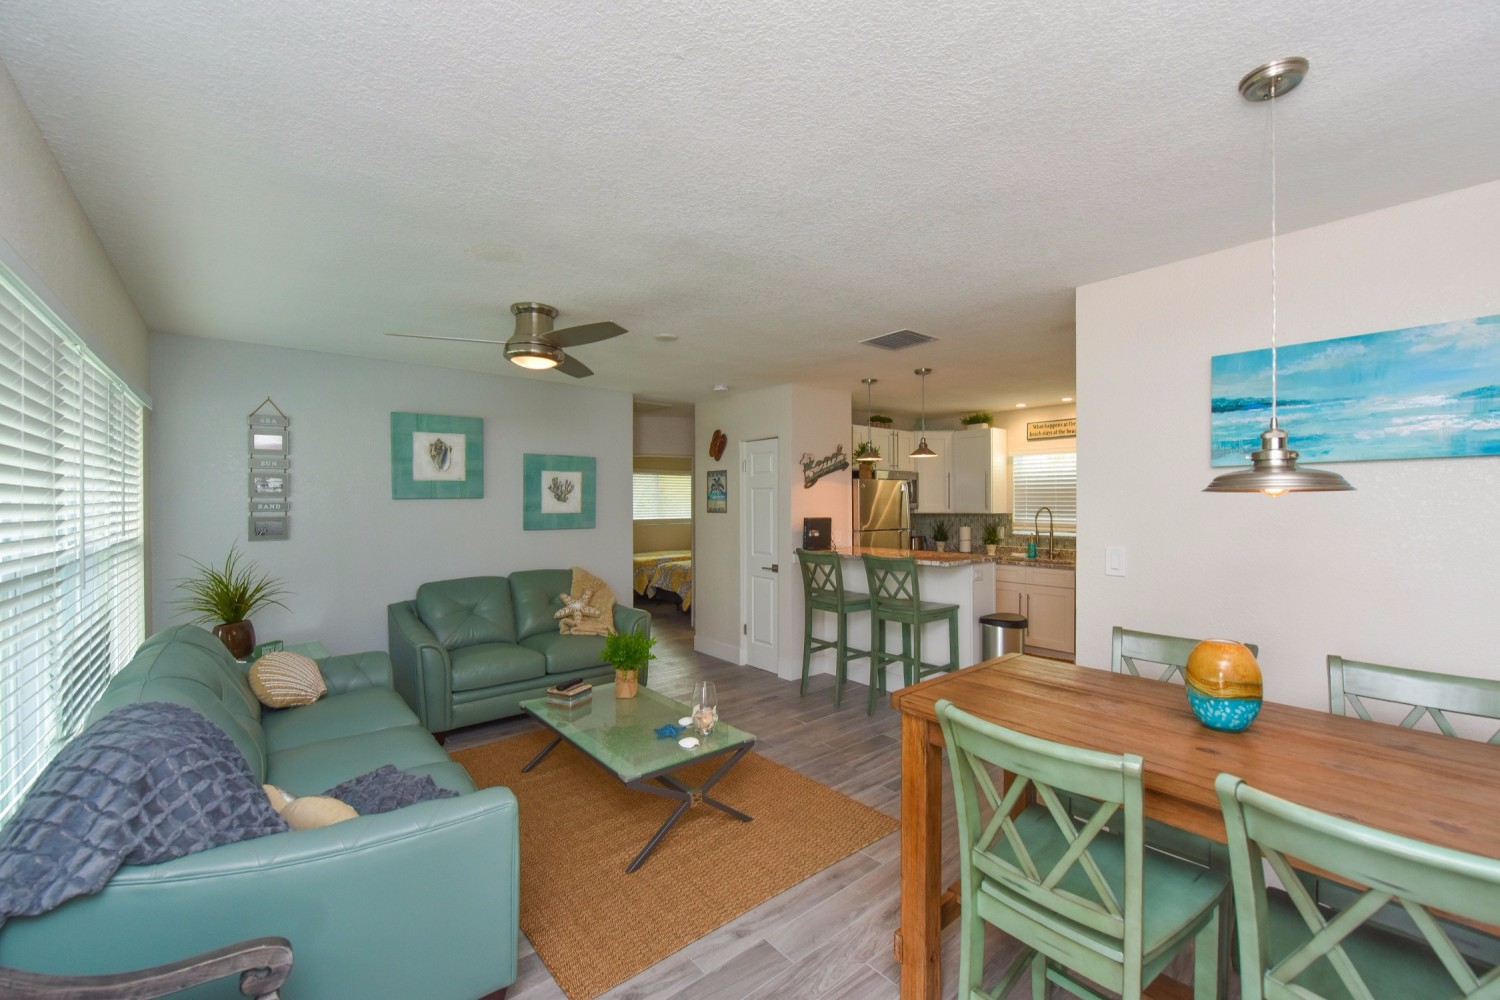 Sun and Sea (2 Bedroom 1 Bath) - Siesta Key Vacation Rentals